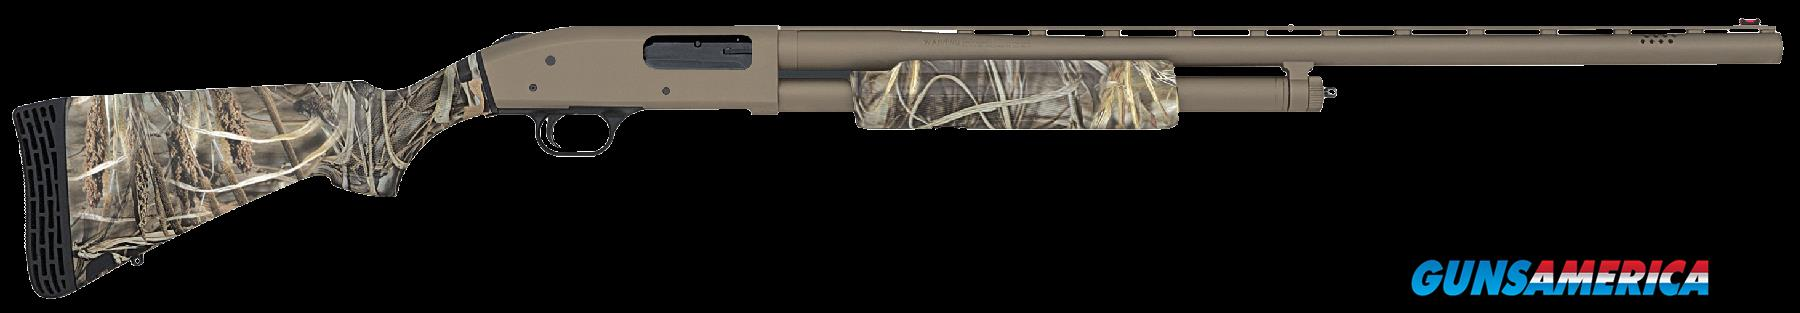 "Mossberg 50124 500 FLEX Hunting Pump 12 ga 28"" 3"" Max-4 Syn Stk Tan  Guns > Shotguns > Mossberg Shotguns > Pump > Sporting"